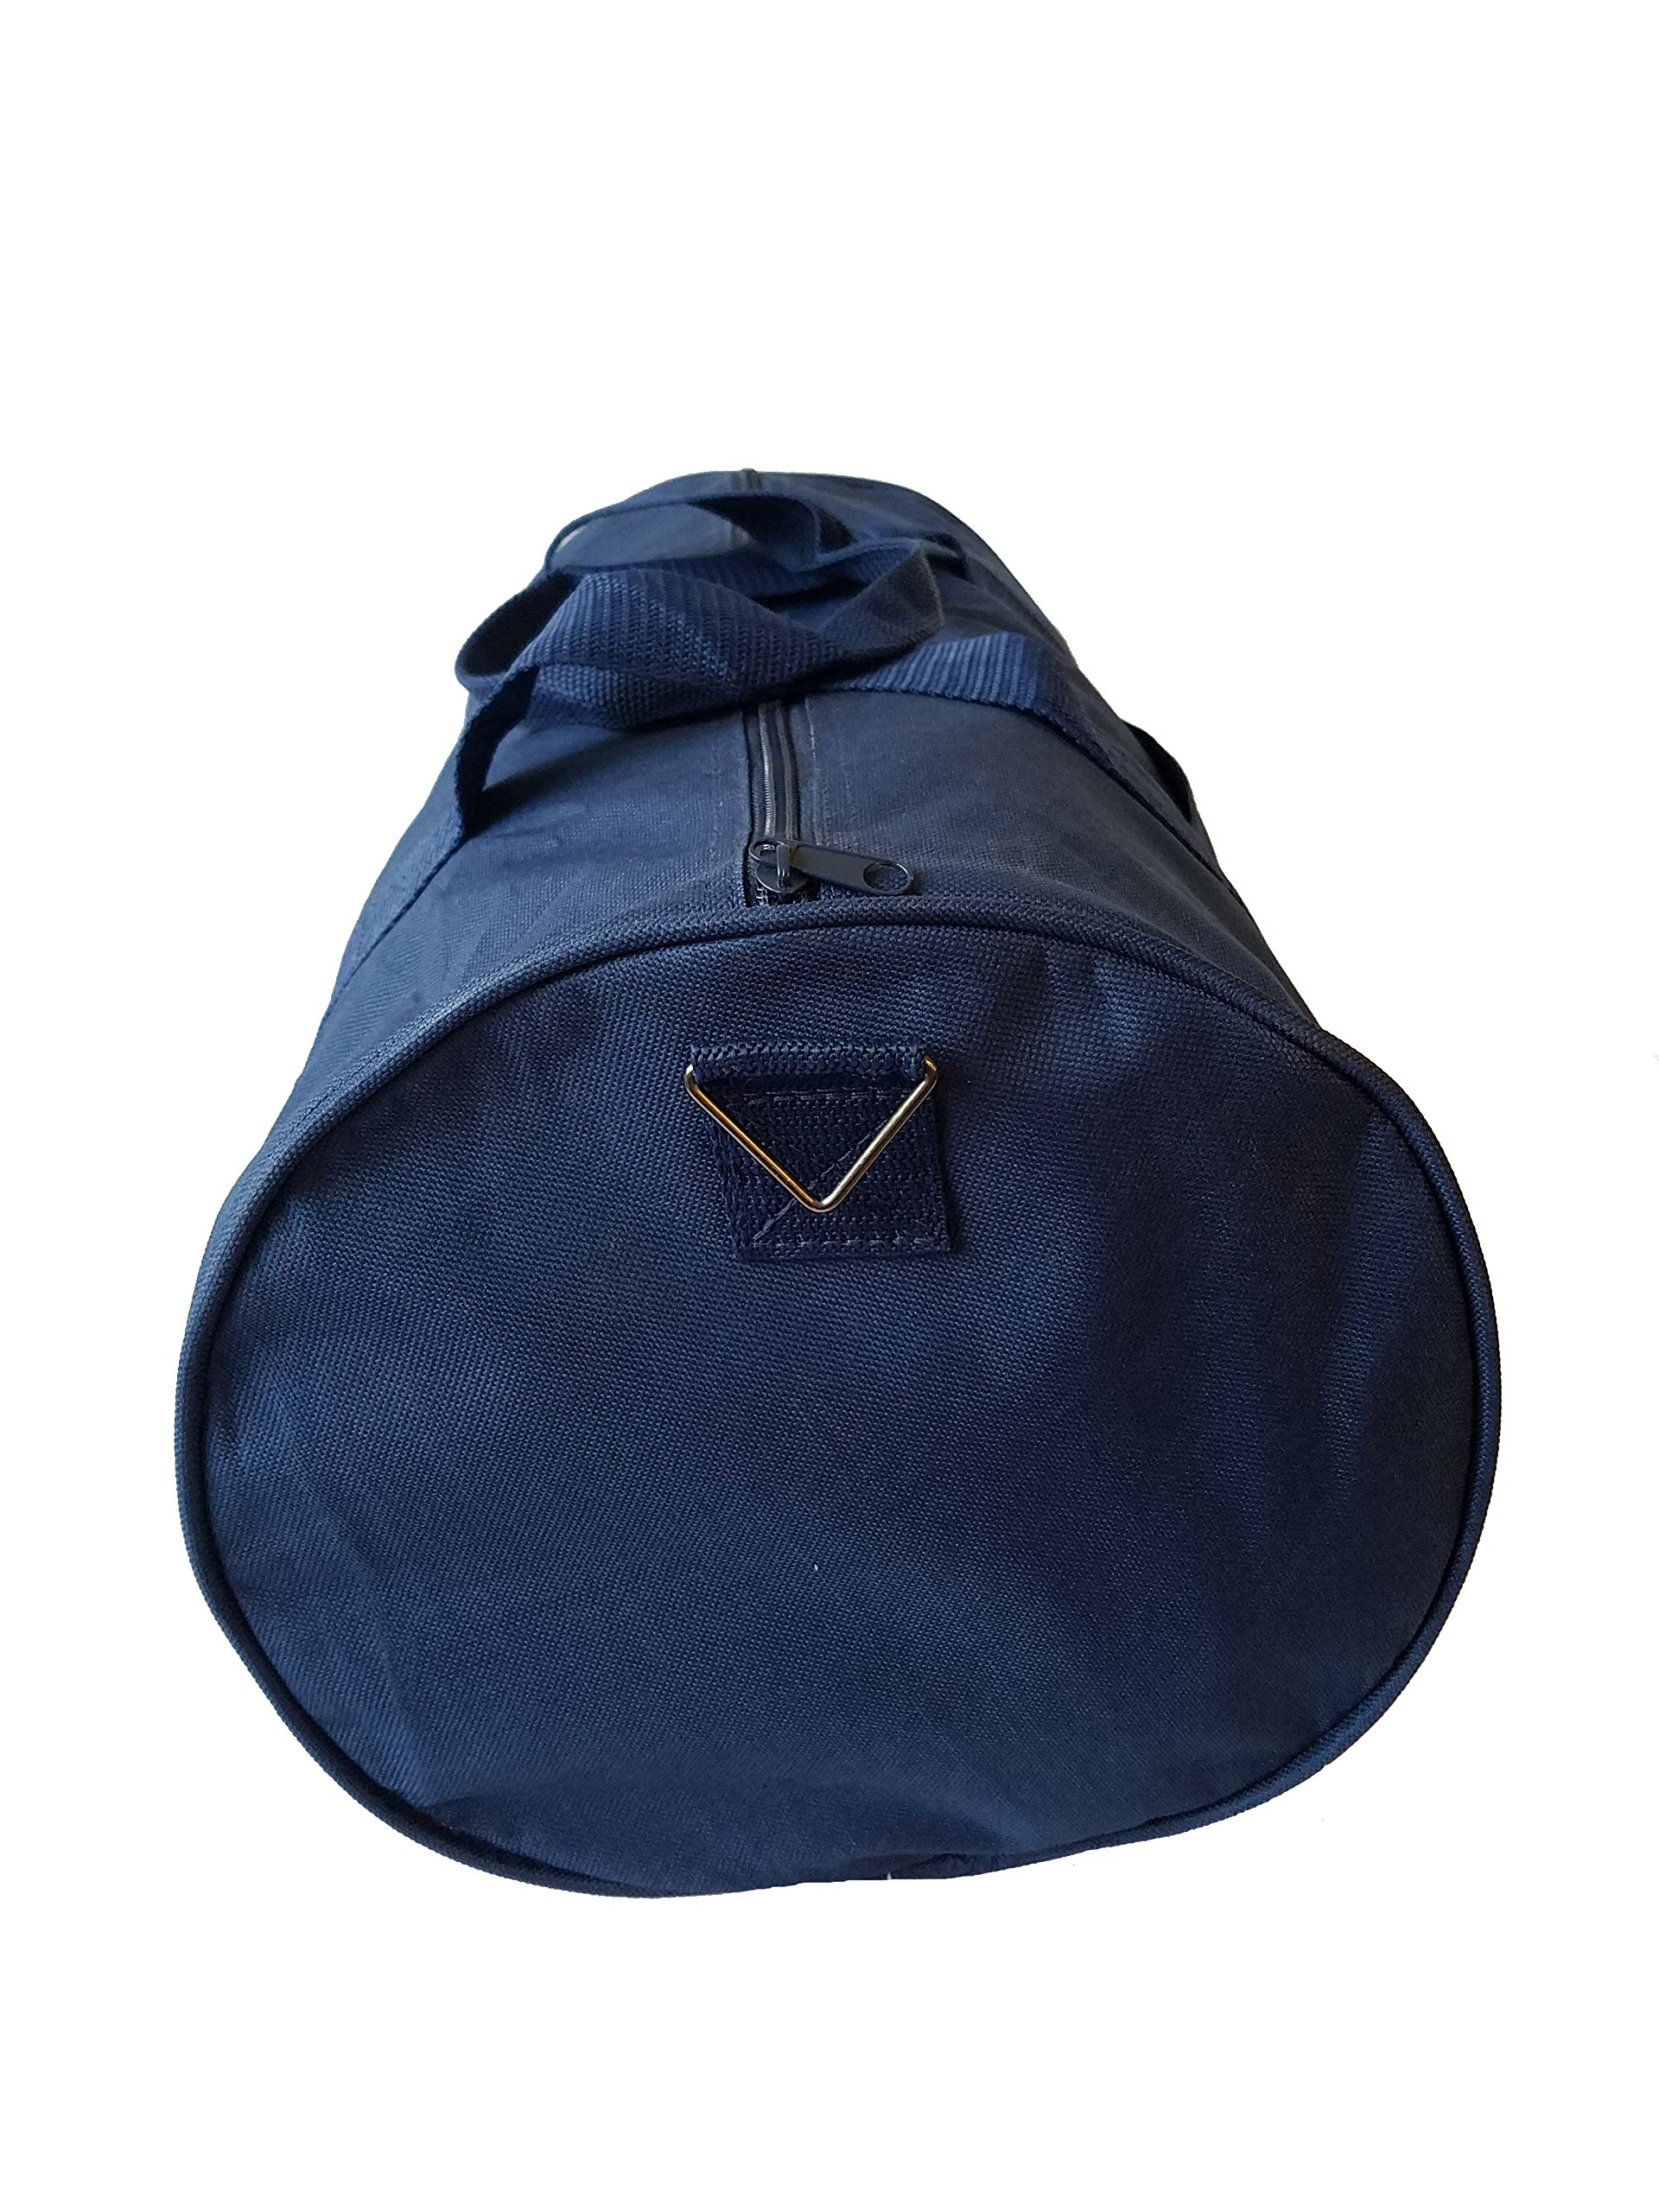 ImpecGear Round Duffel Sports Bags, Travel Gym Fitness Bag. (Navy) by ImpecGear (Image #6)